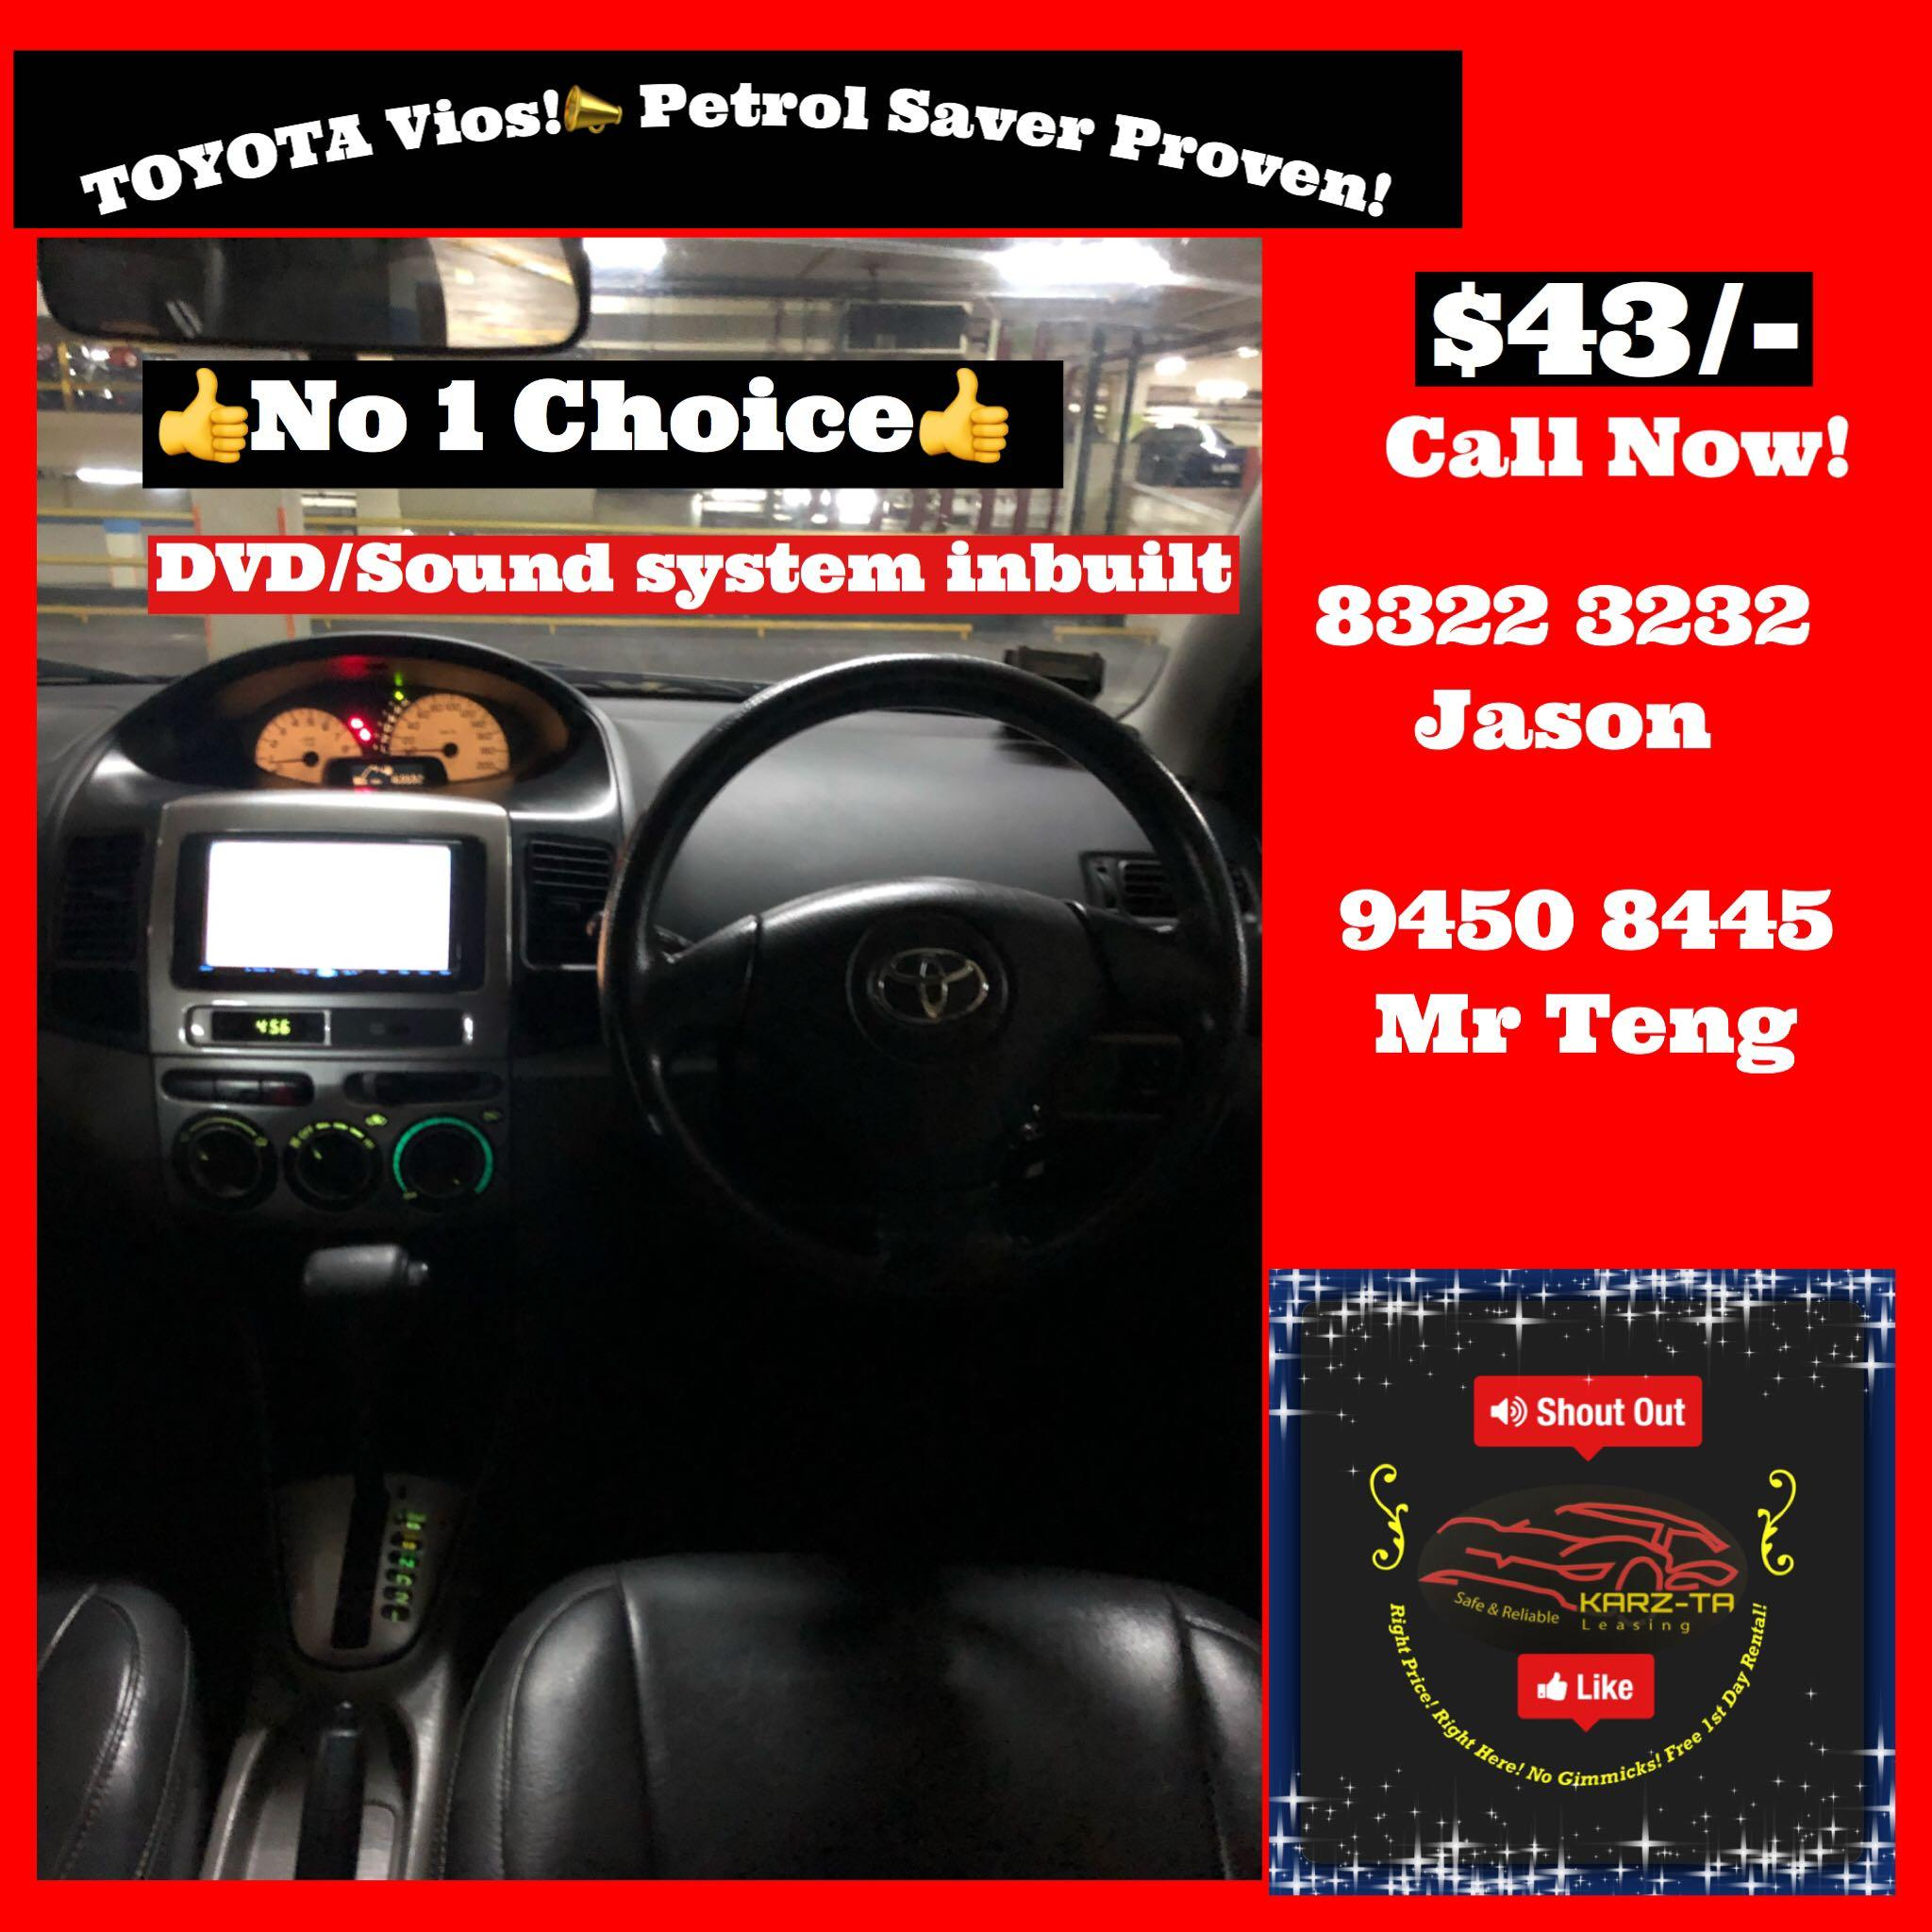 Promo Now! Range From $43! House of Toyota! Lowest Price! Can Drive Go-Jek/Grab/Ryde! Flexible Rental Scheme! Personal User! Call Now!